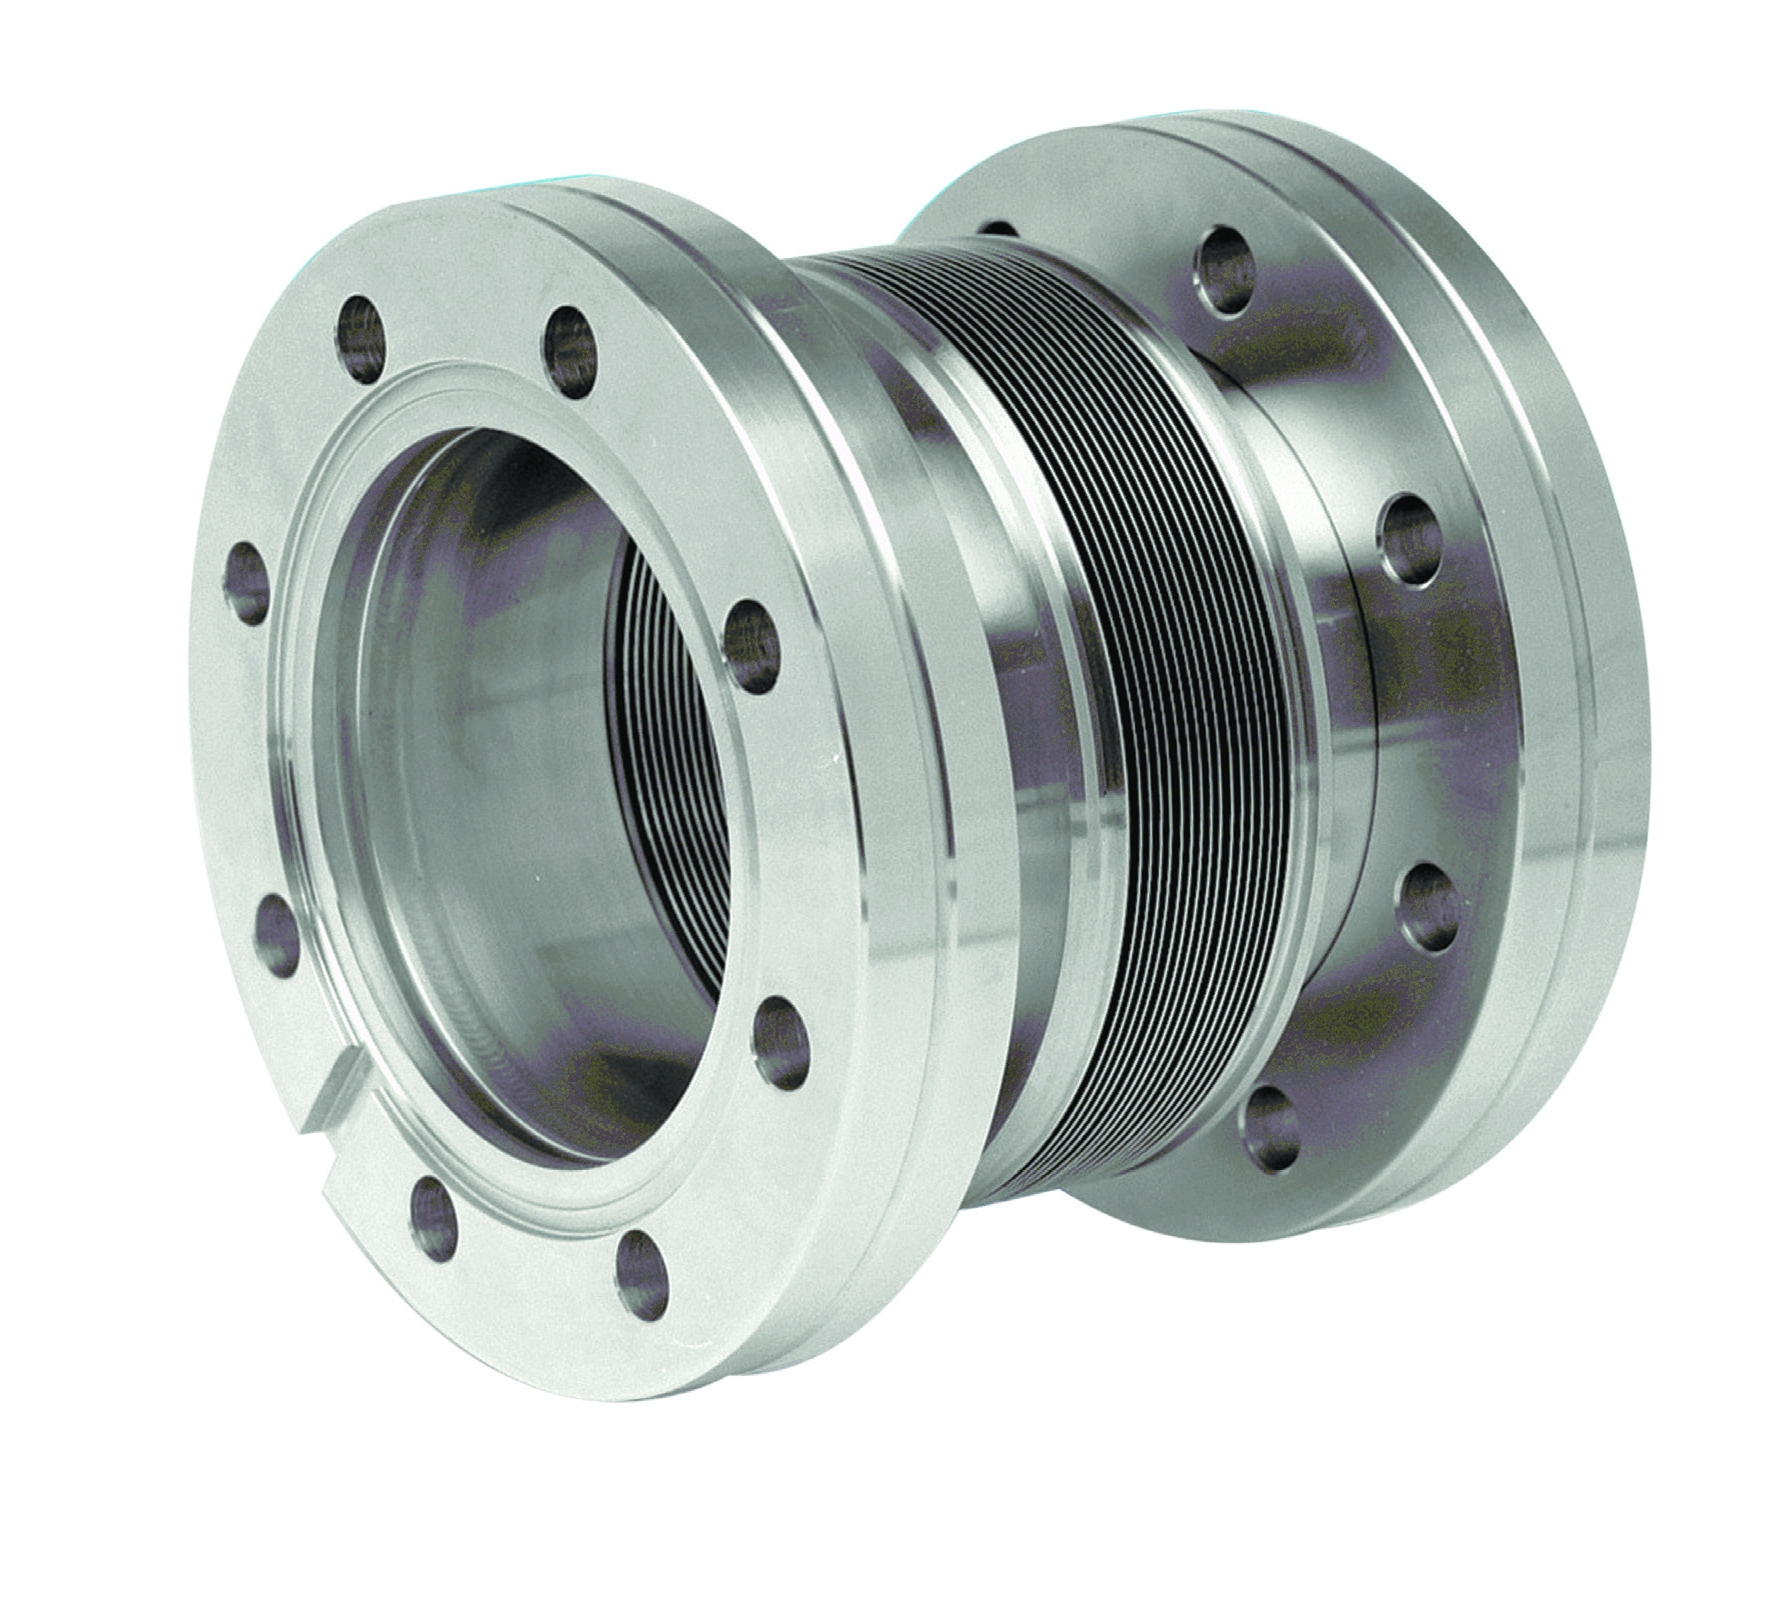 Edge welded bellow with DN150CF flanges, L = 103 - 203mm